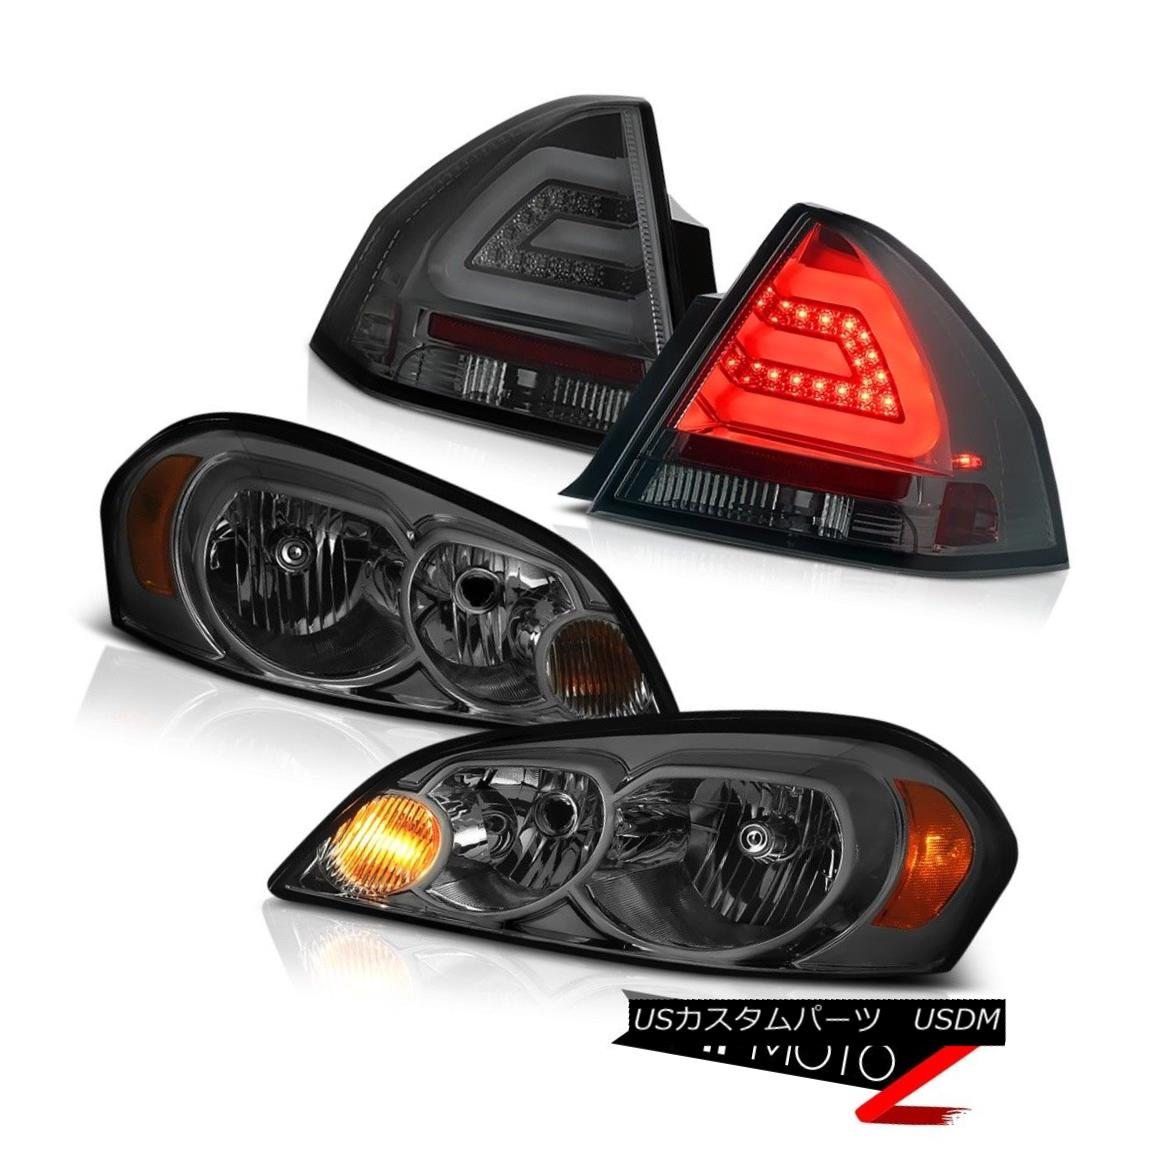 ヘッドライト 06-13 CHEVY IMPALA LT Smokey parking brake lights headlamps LED SMD